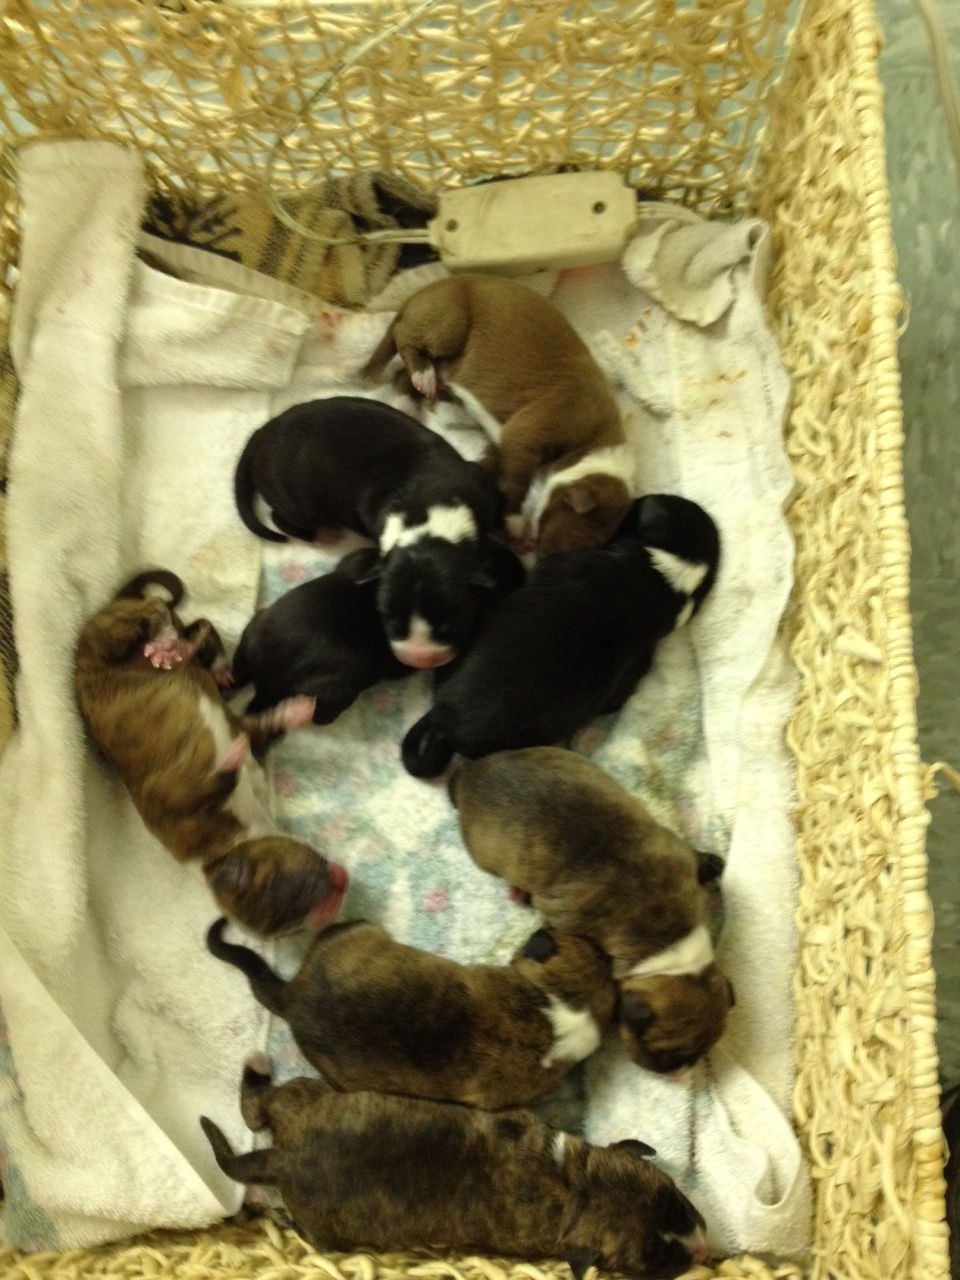 Chocolate Lab Pit And American Bulldog Mix Newborn Puppies 2 27 2012 Newborn Puppies Doxie Puppies Baby Puppies